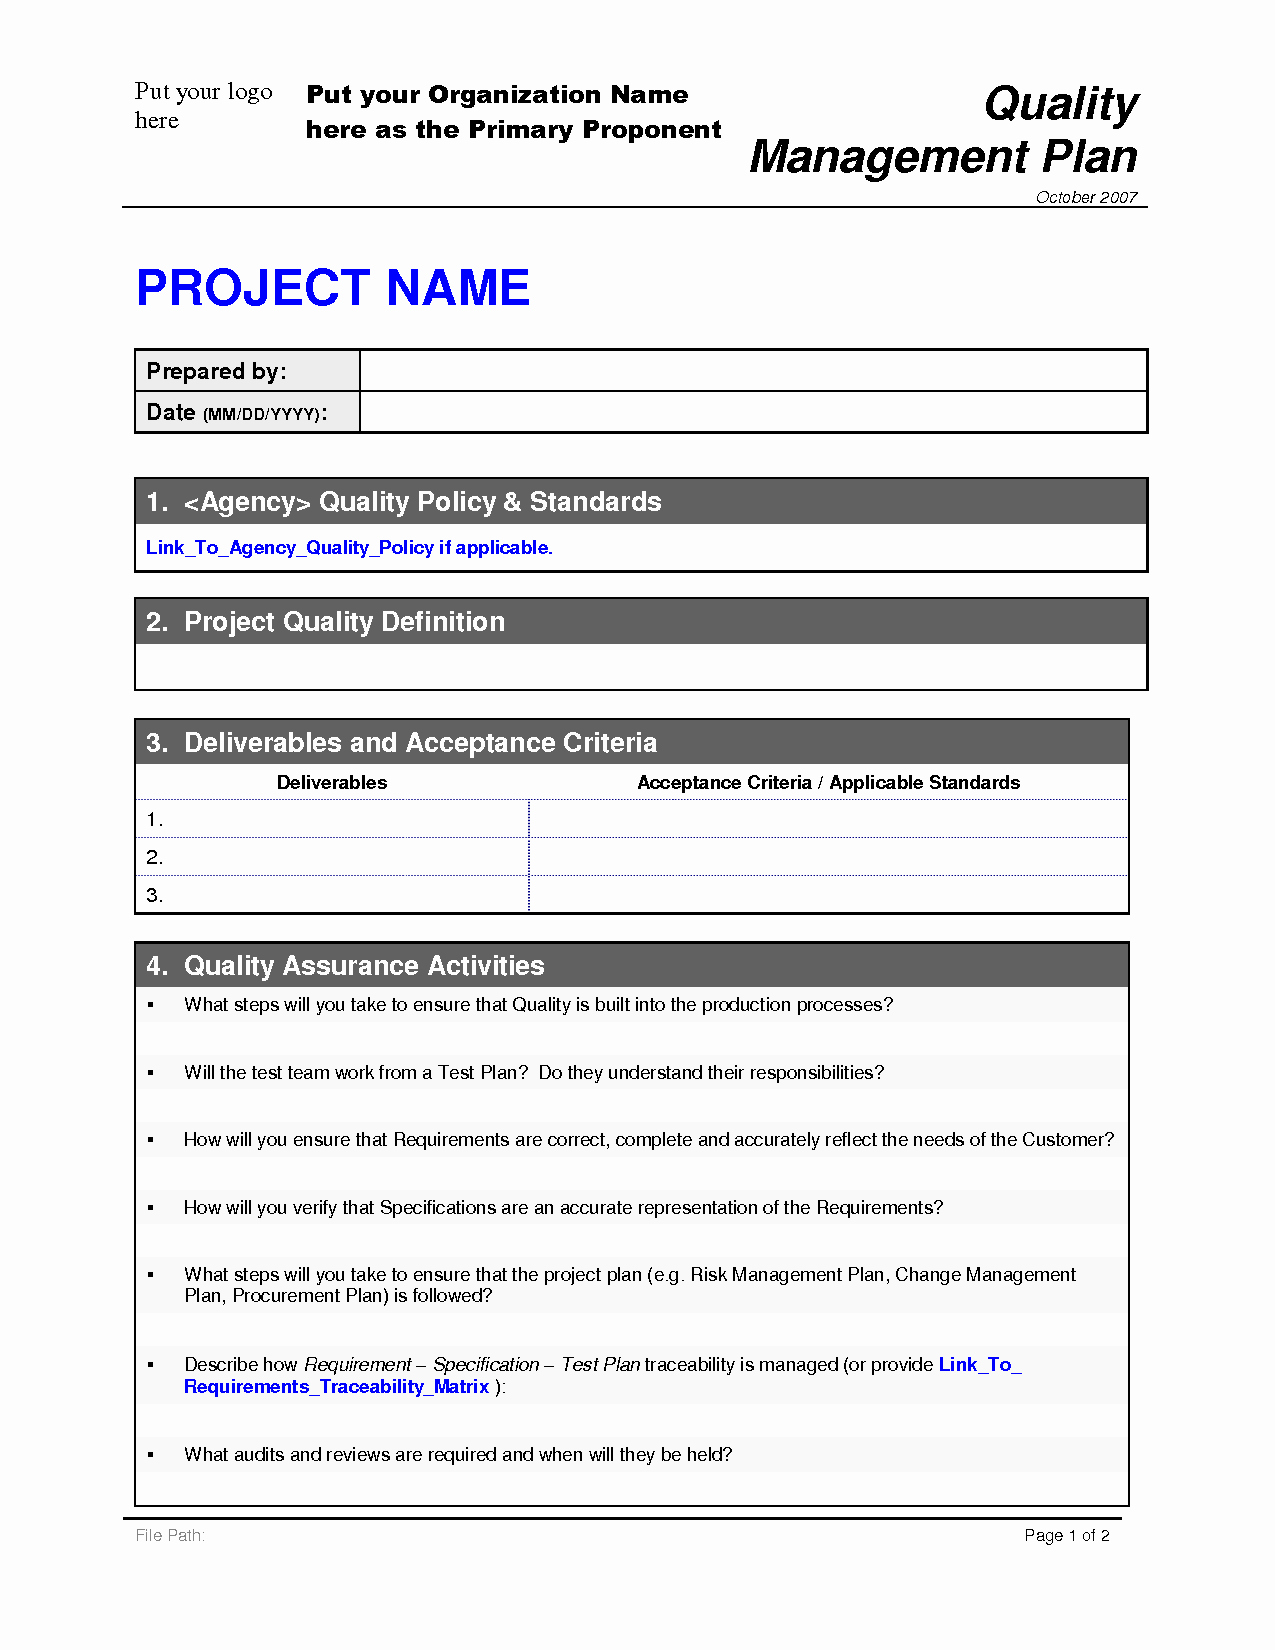 Quality Management Plan Template Luxury Project Quality Plan Template 2 by Malj